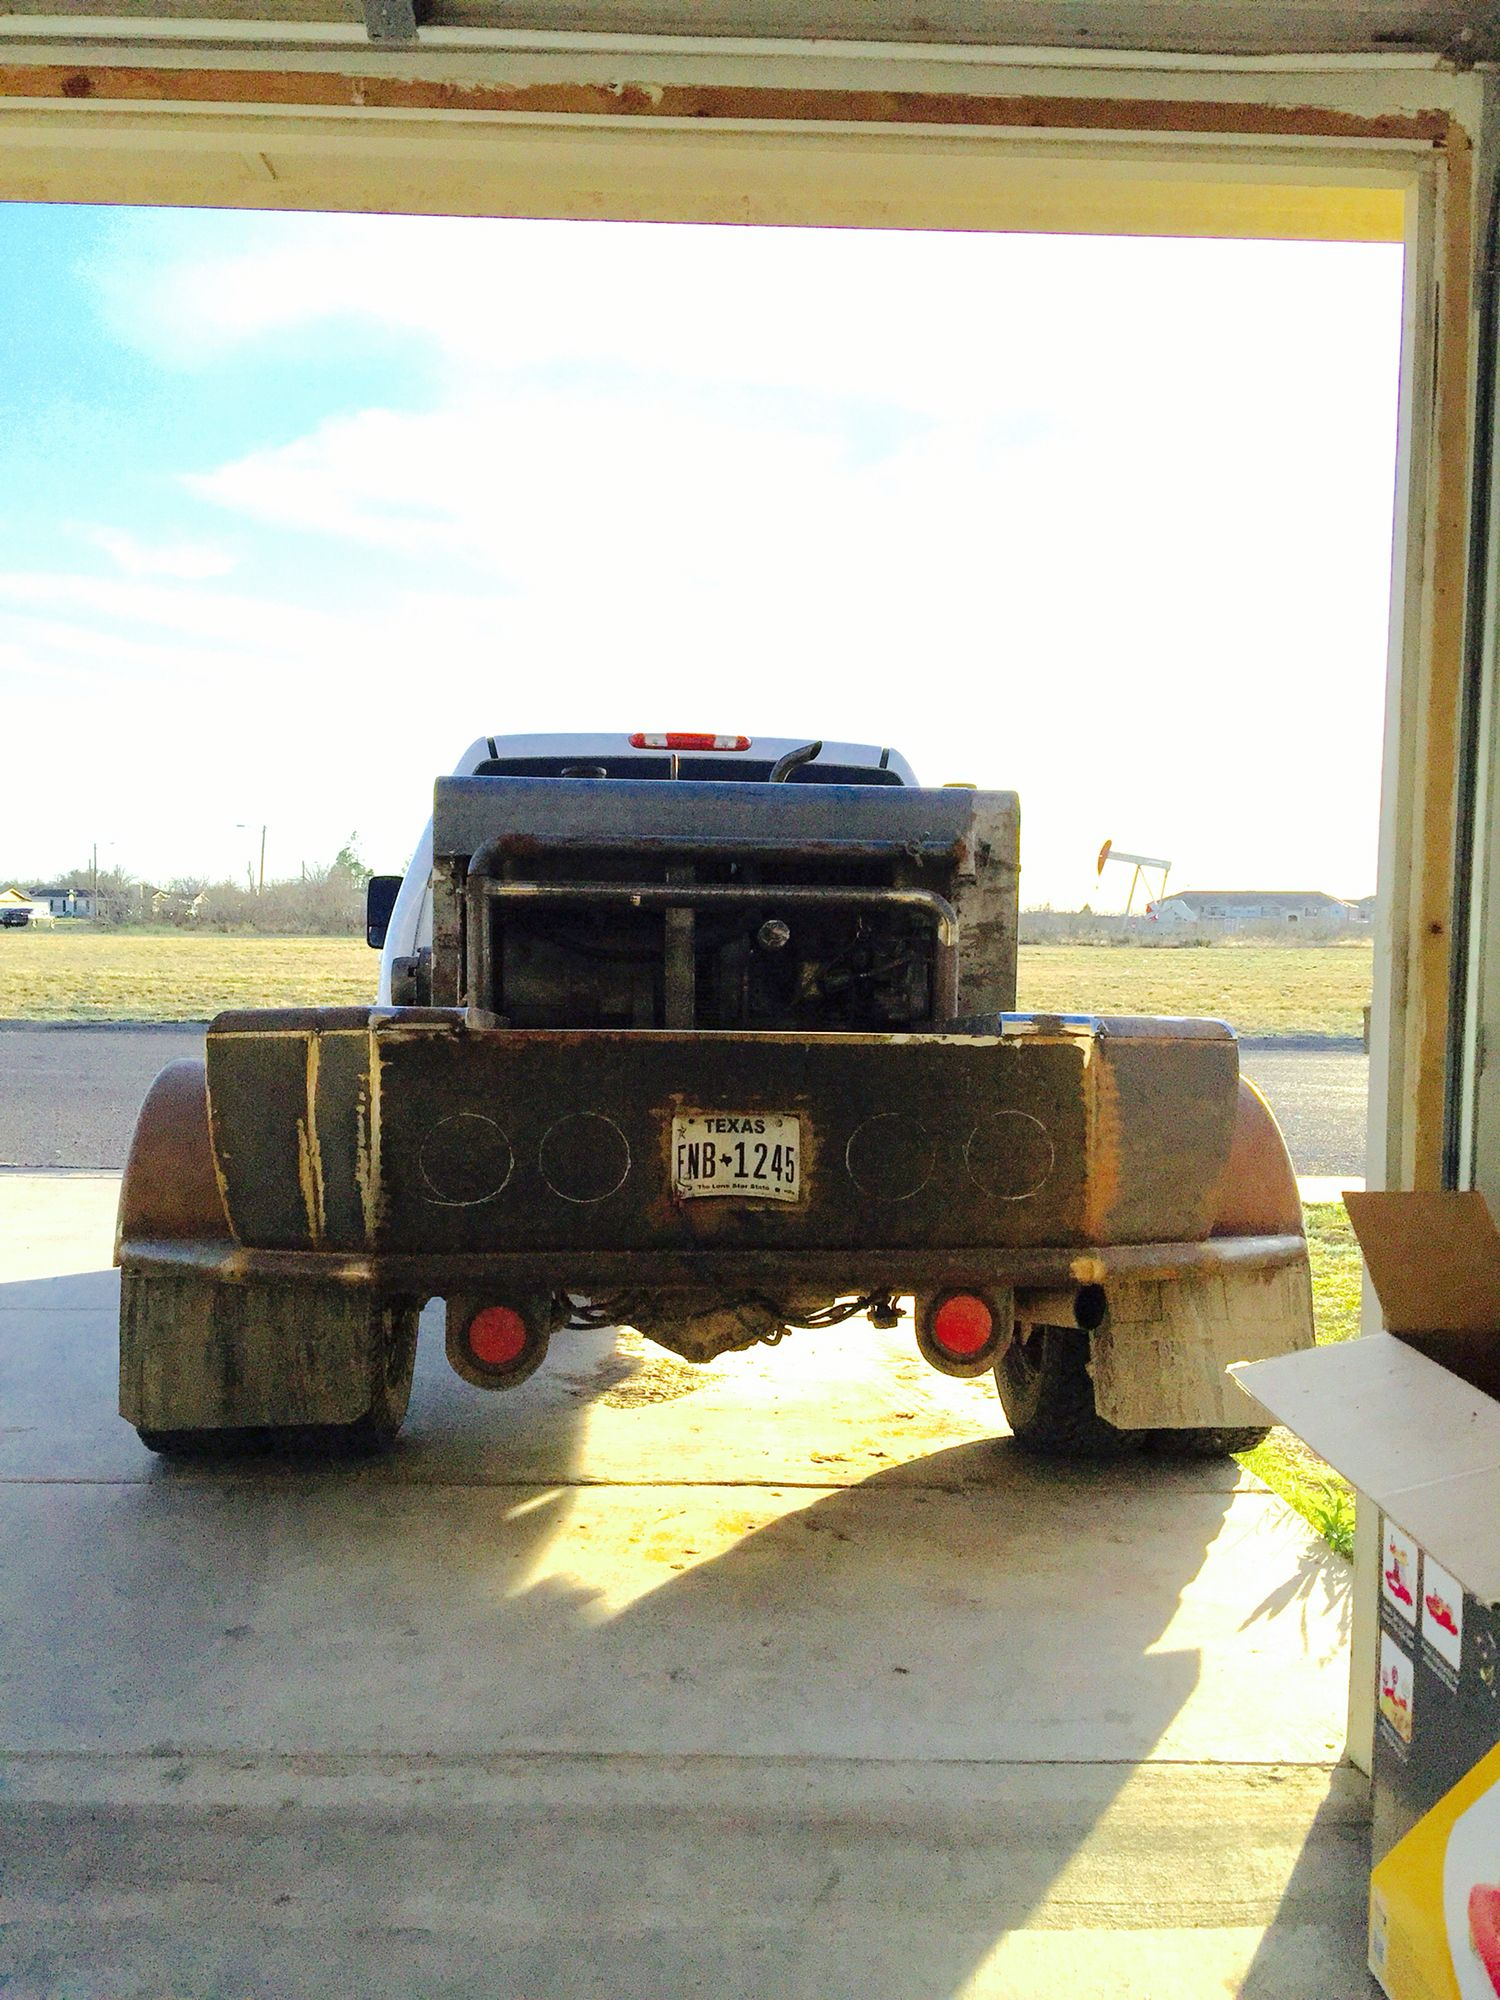 Welding bed Welding trucks, Welding beds, Welding rigs